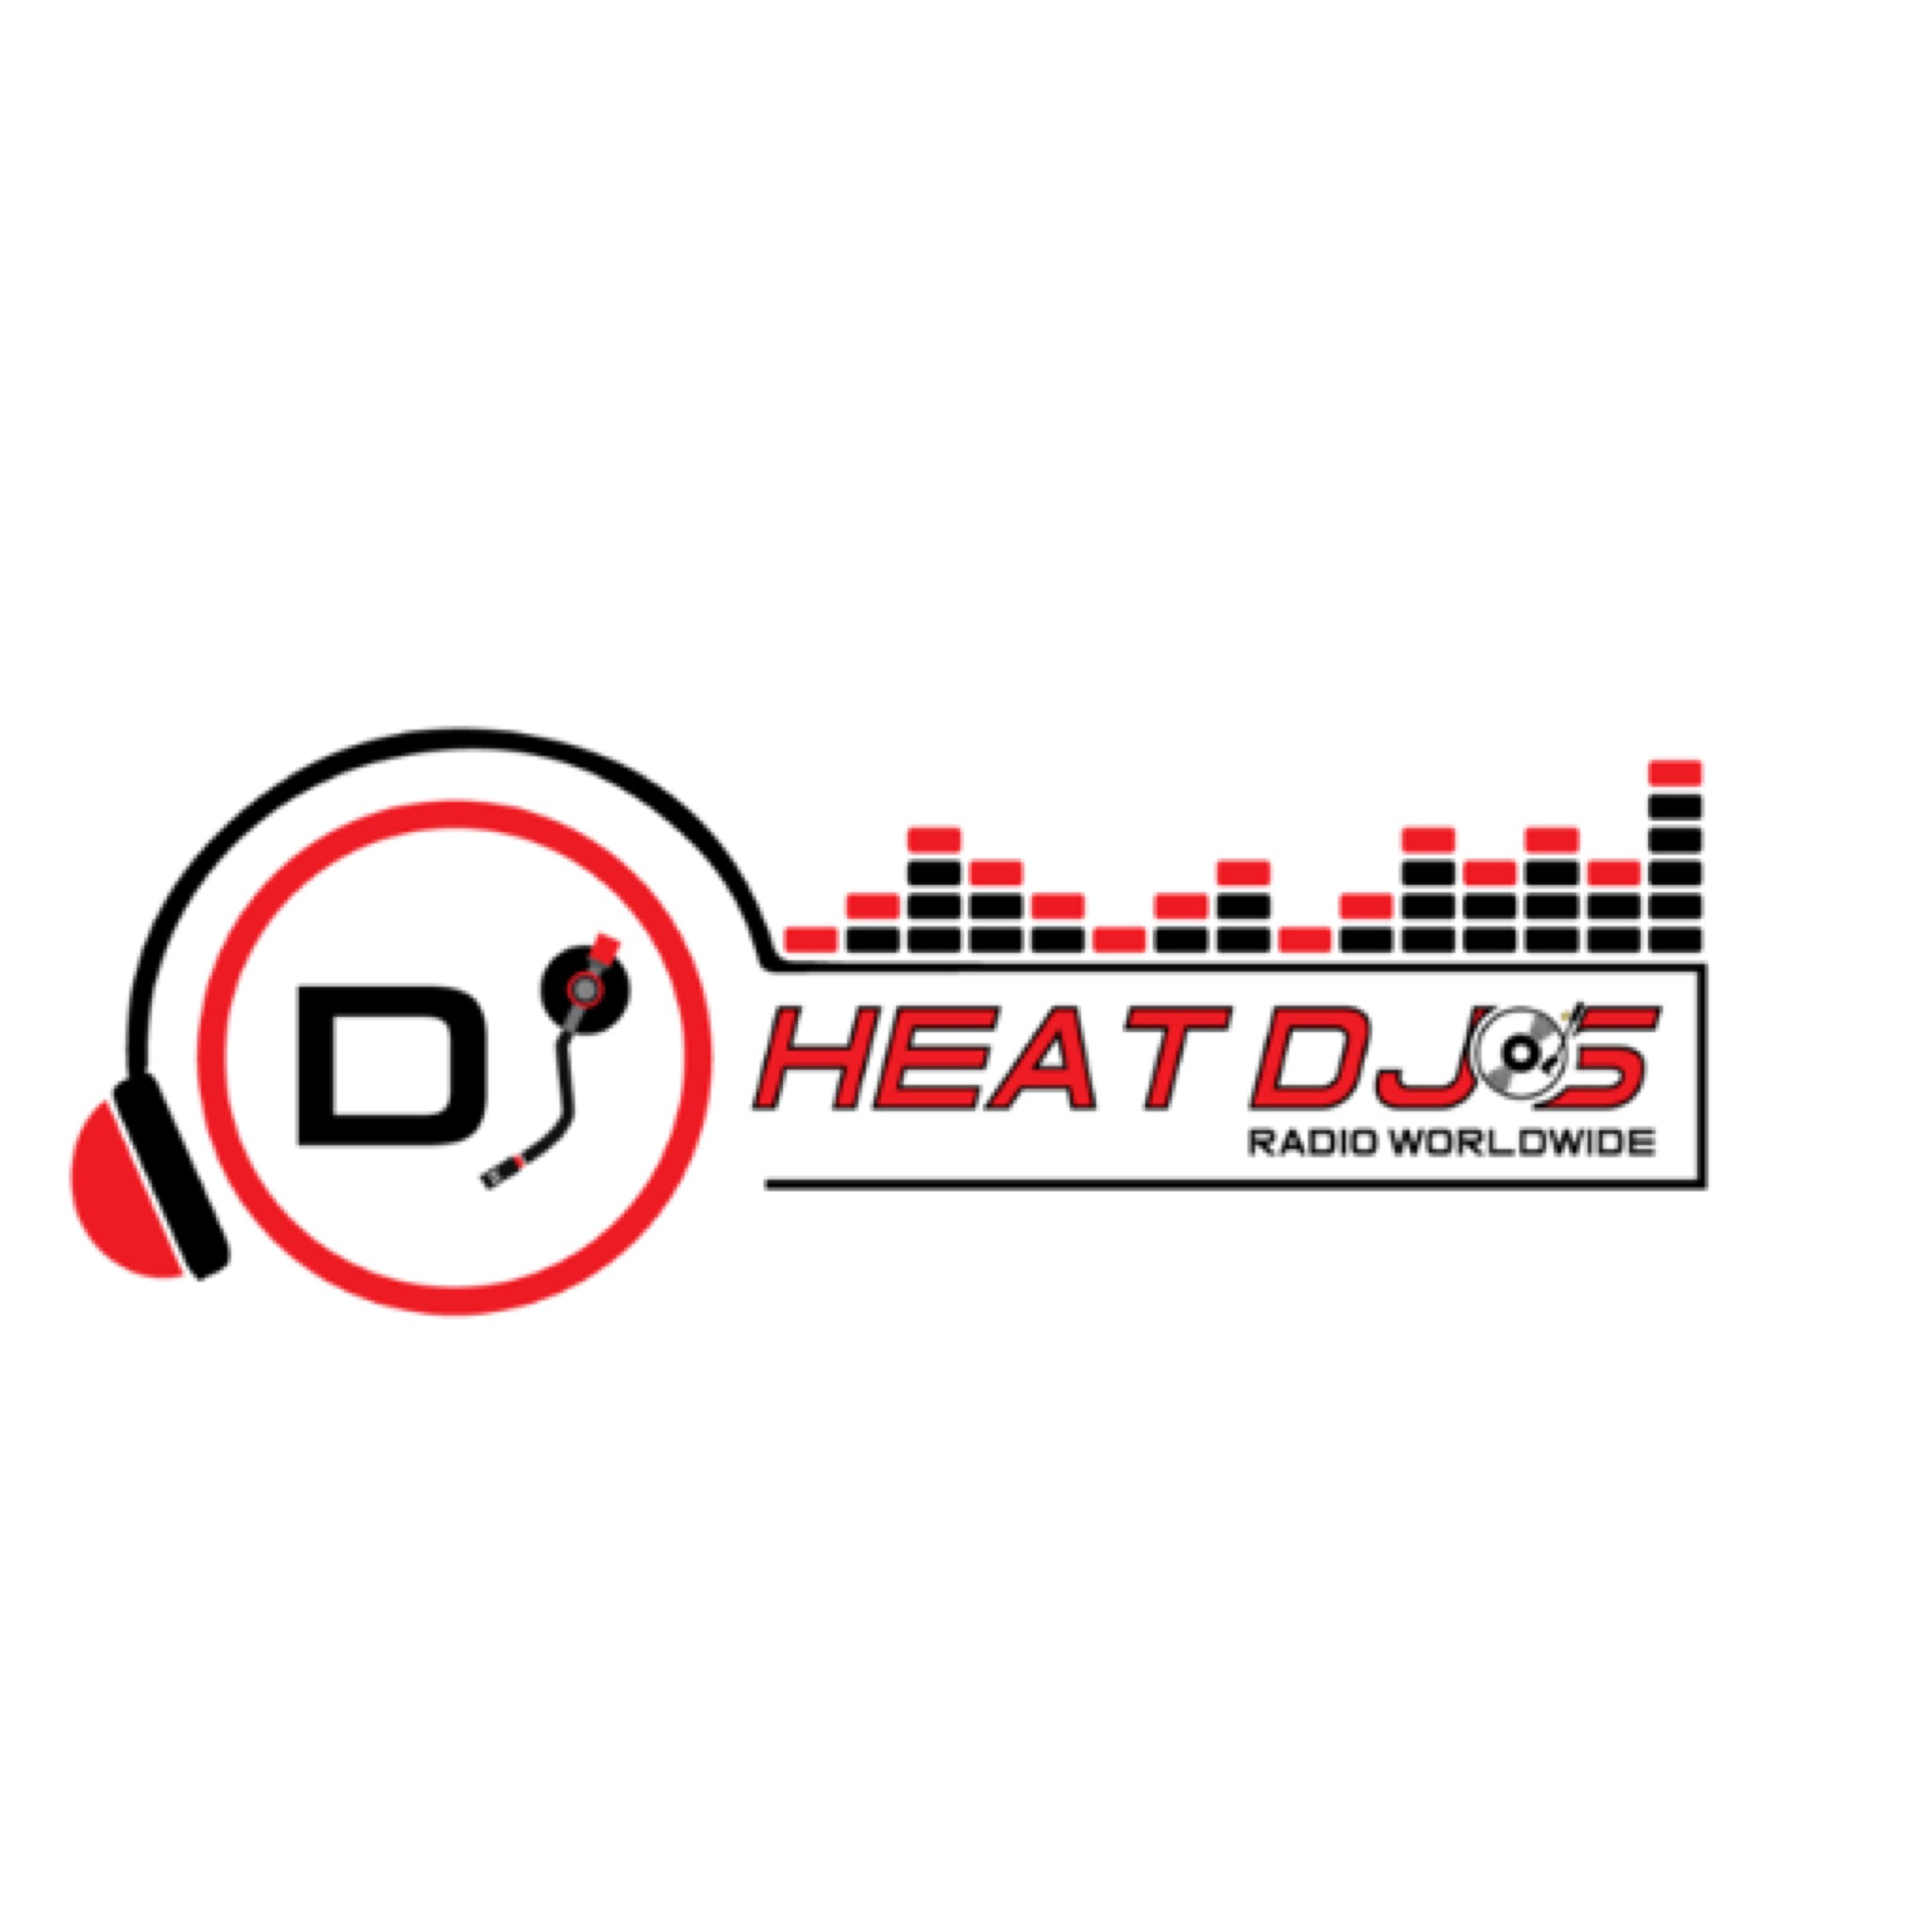 THE HEAT DJS RADIO